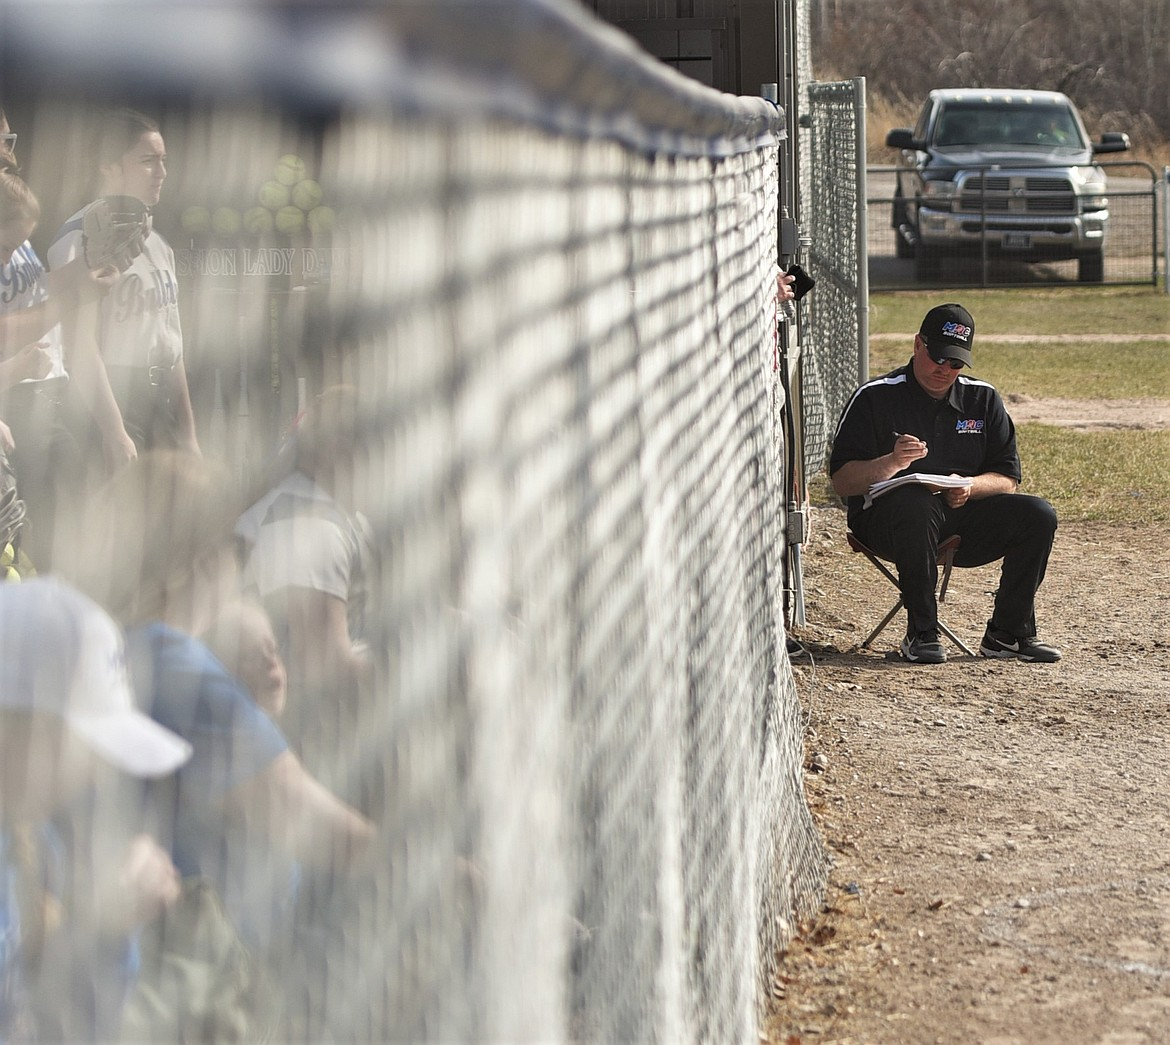 Mission-Arlee-Charlo coach Shane Reum checks his notes during his team's game against Eureka. (Scot Heisel/Lake County Leader)